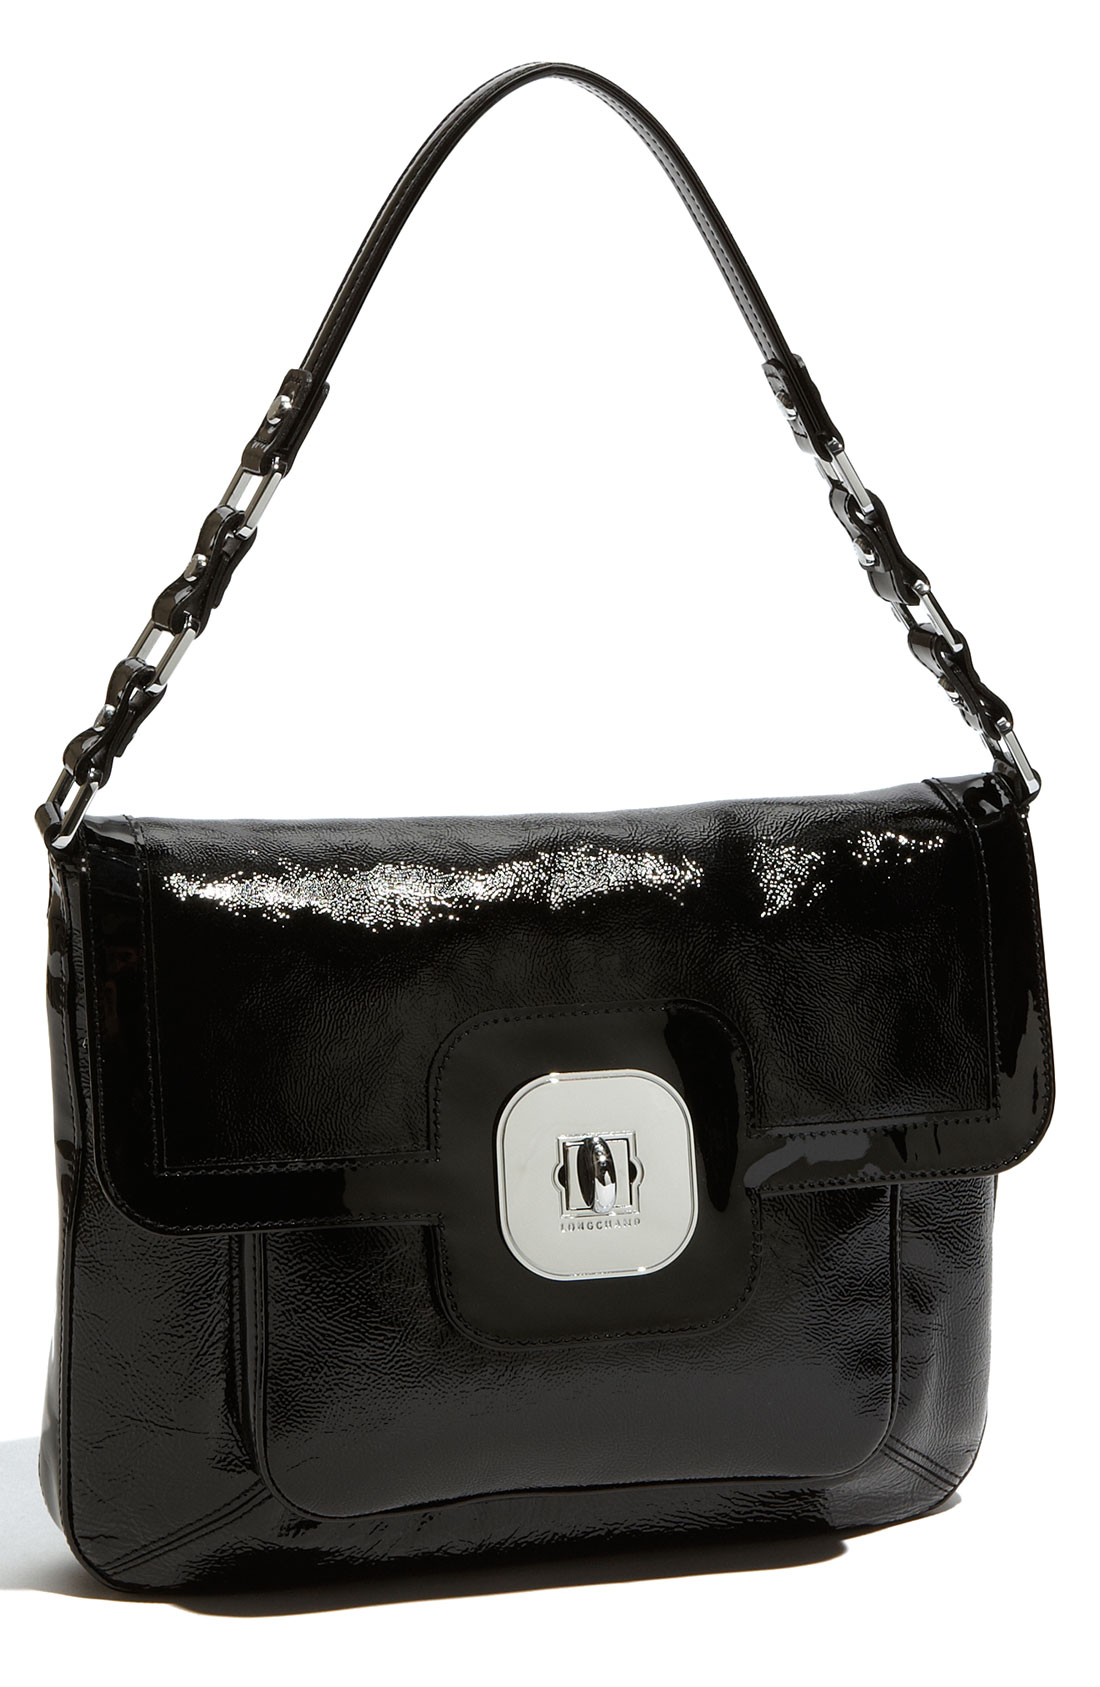 Long Champ Messenger Bag Boutique Paris Free Shipping On 284